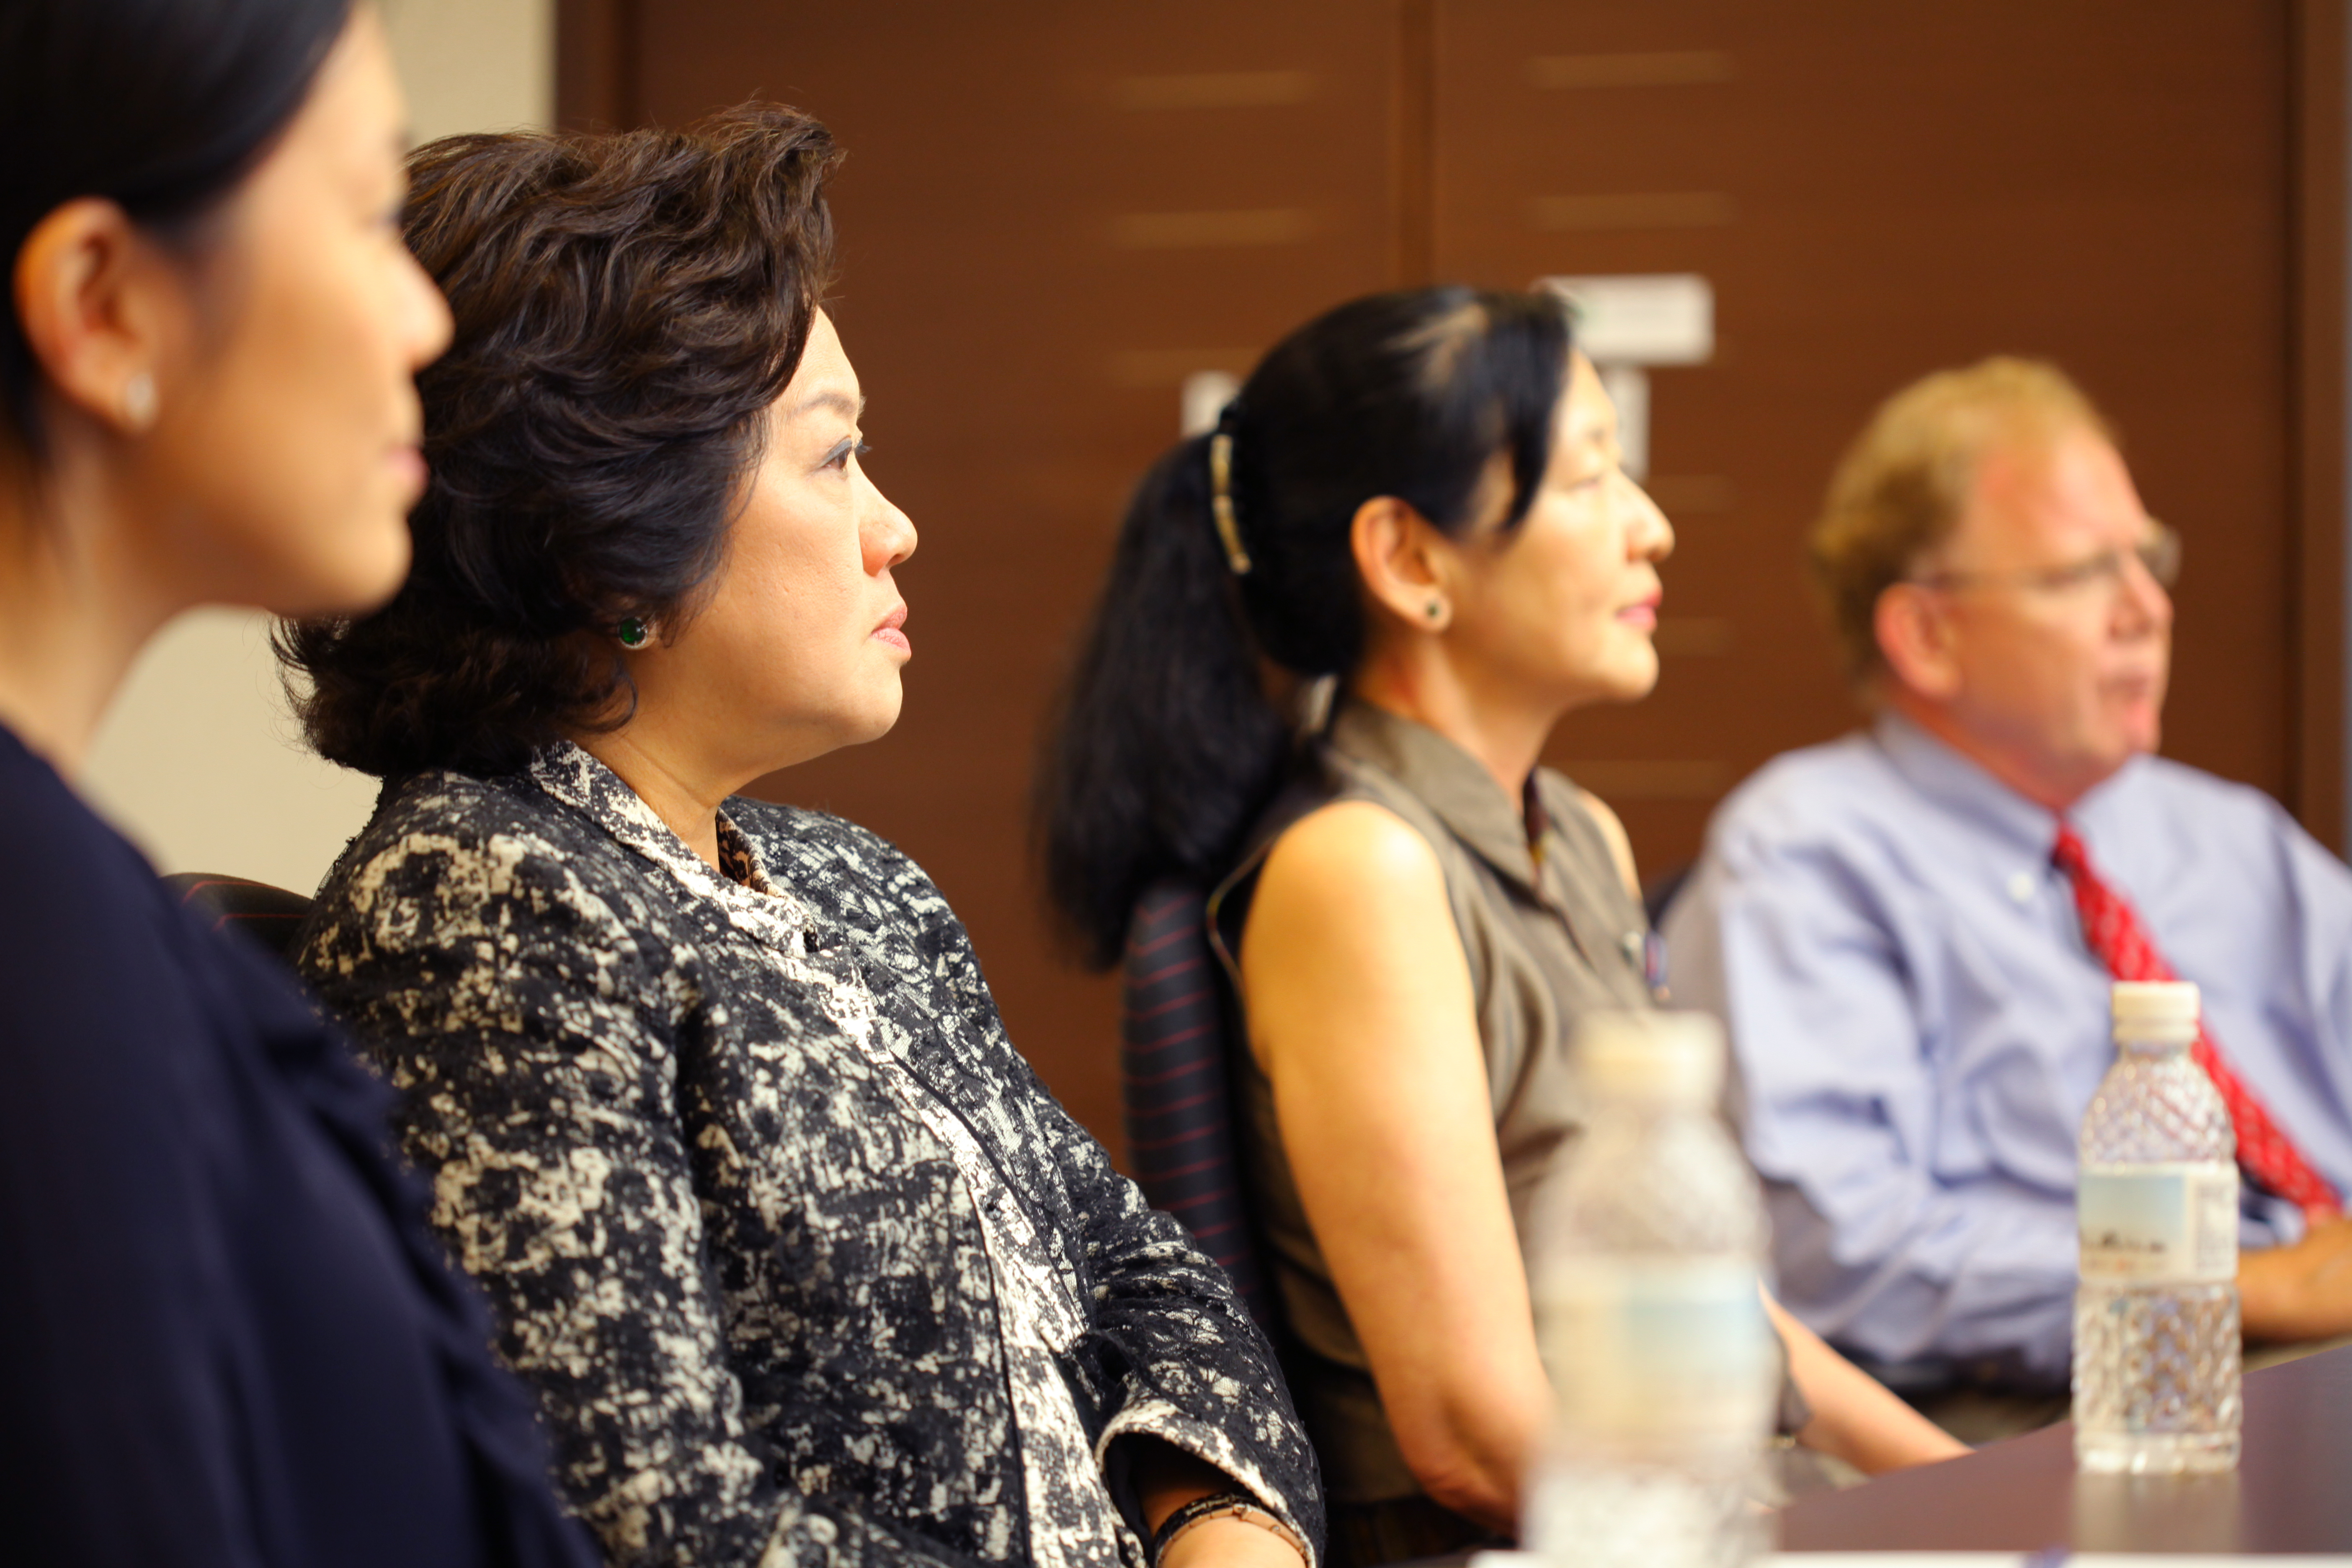 Tanoto Foundation Co-Founder Tinah Bingei Tanoto and Board of Trustees Member Belinda Tanoto listen as SingHealth Duke-NUS professors explain the impact of the gift to drug and vaccine discovery